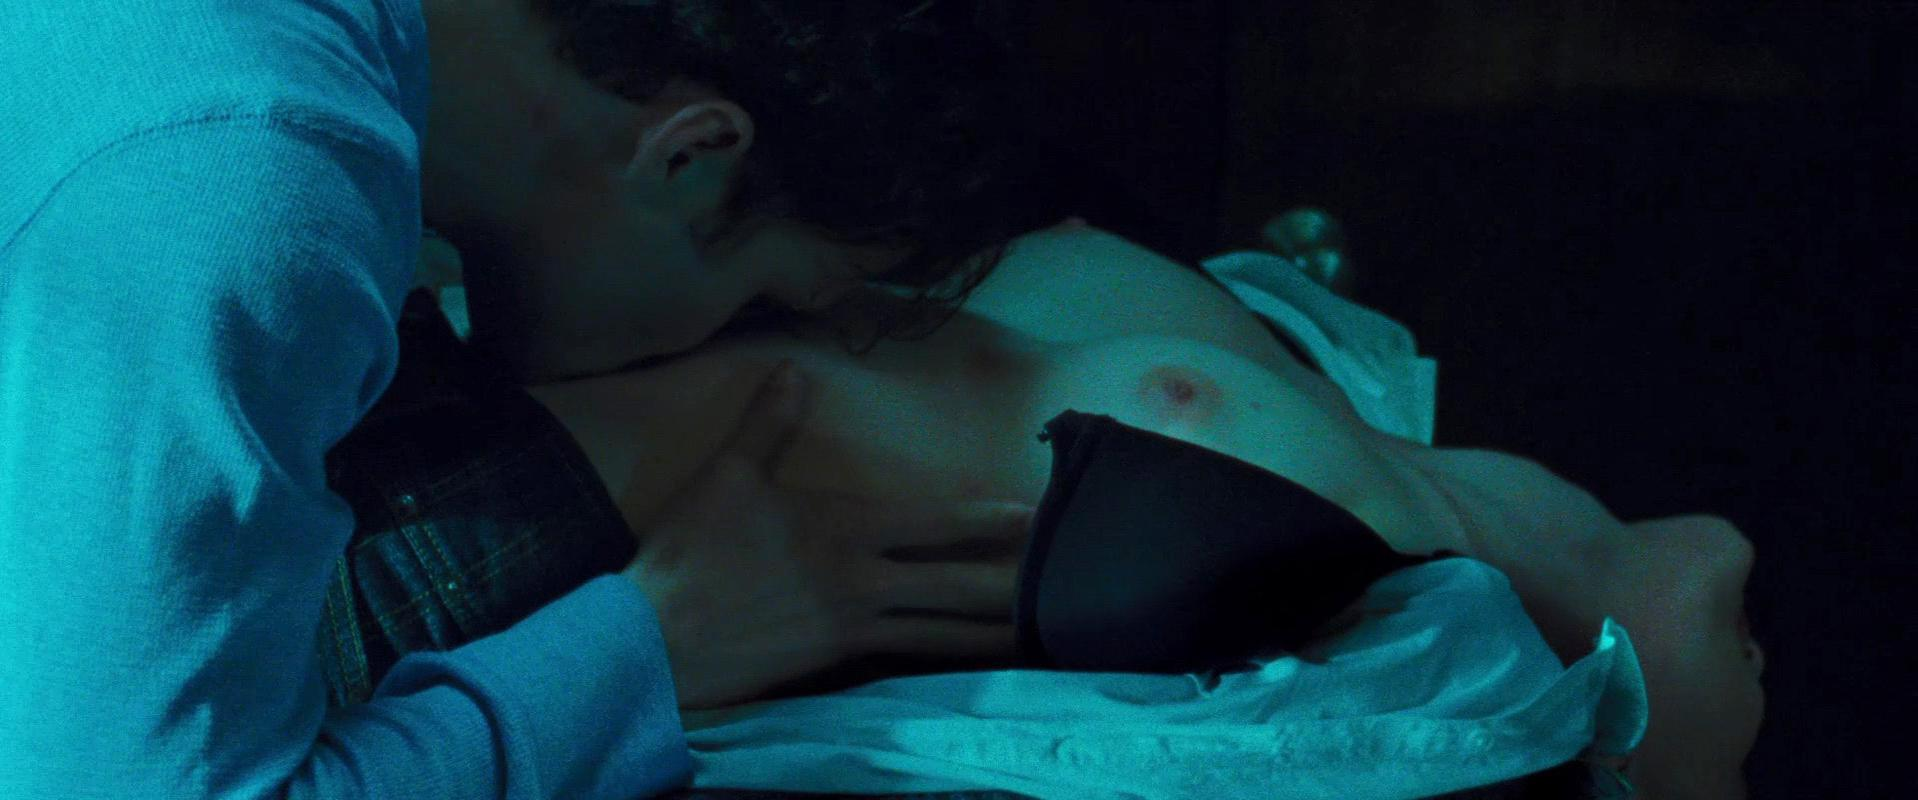 Madeline Zima nude - The Collector (2009)